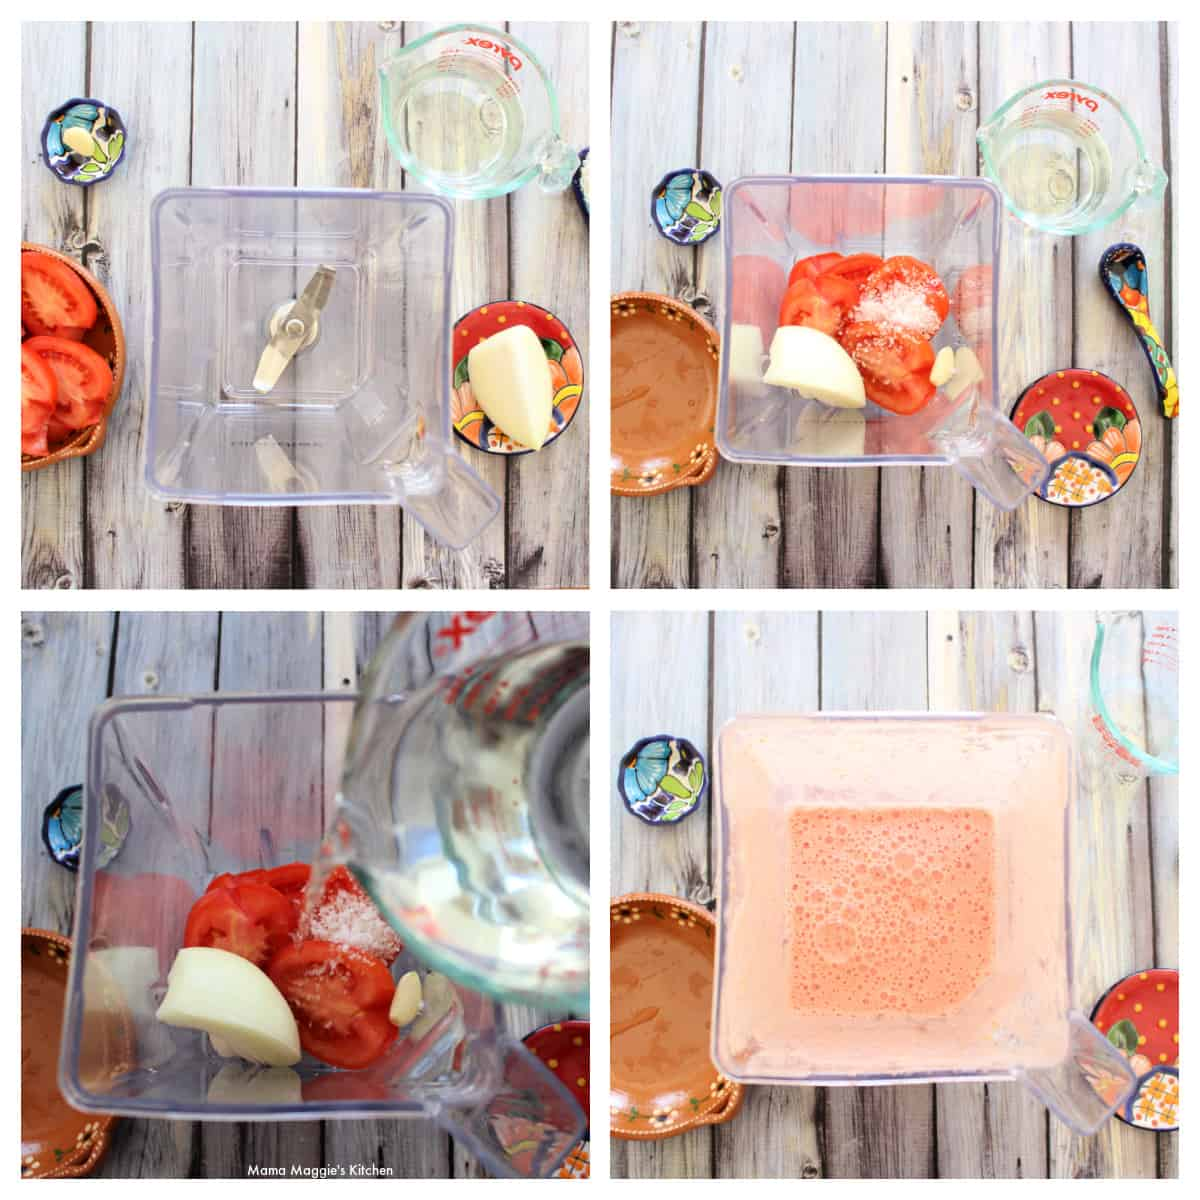 A collage showing how to make homemade tomato sauce.